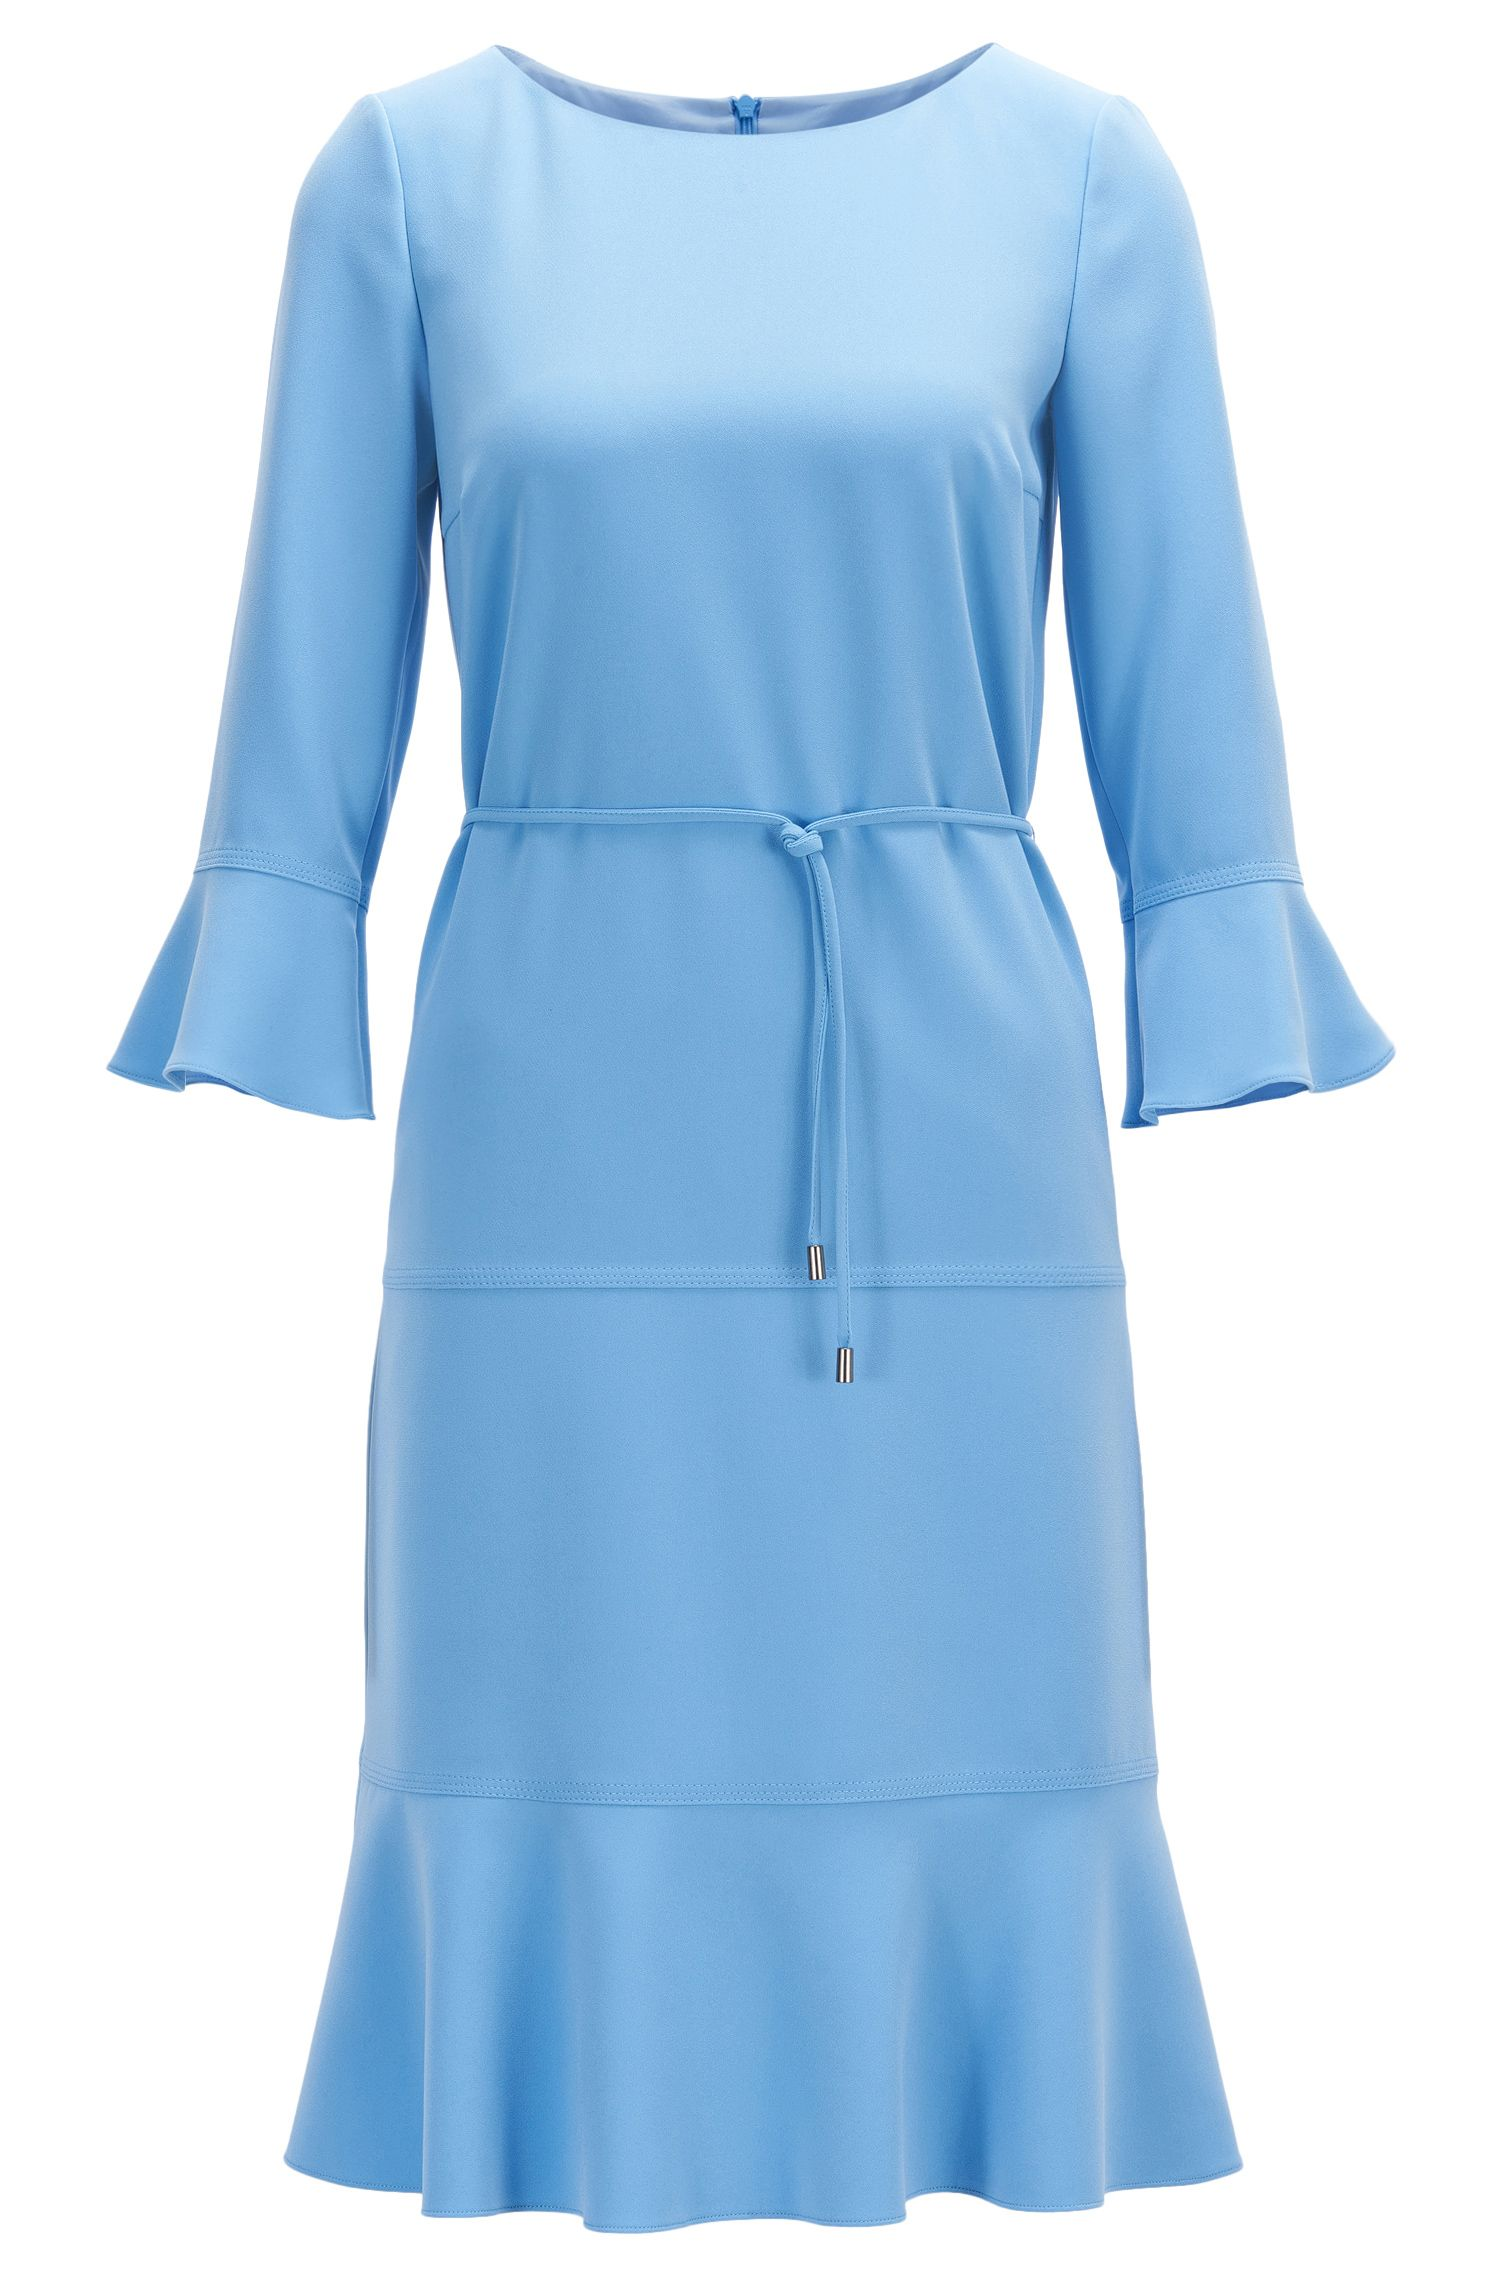 Wide-neck dress with removable belt